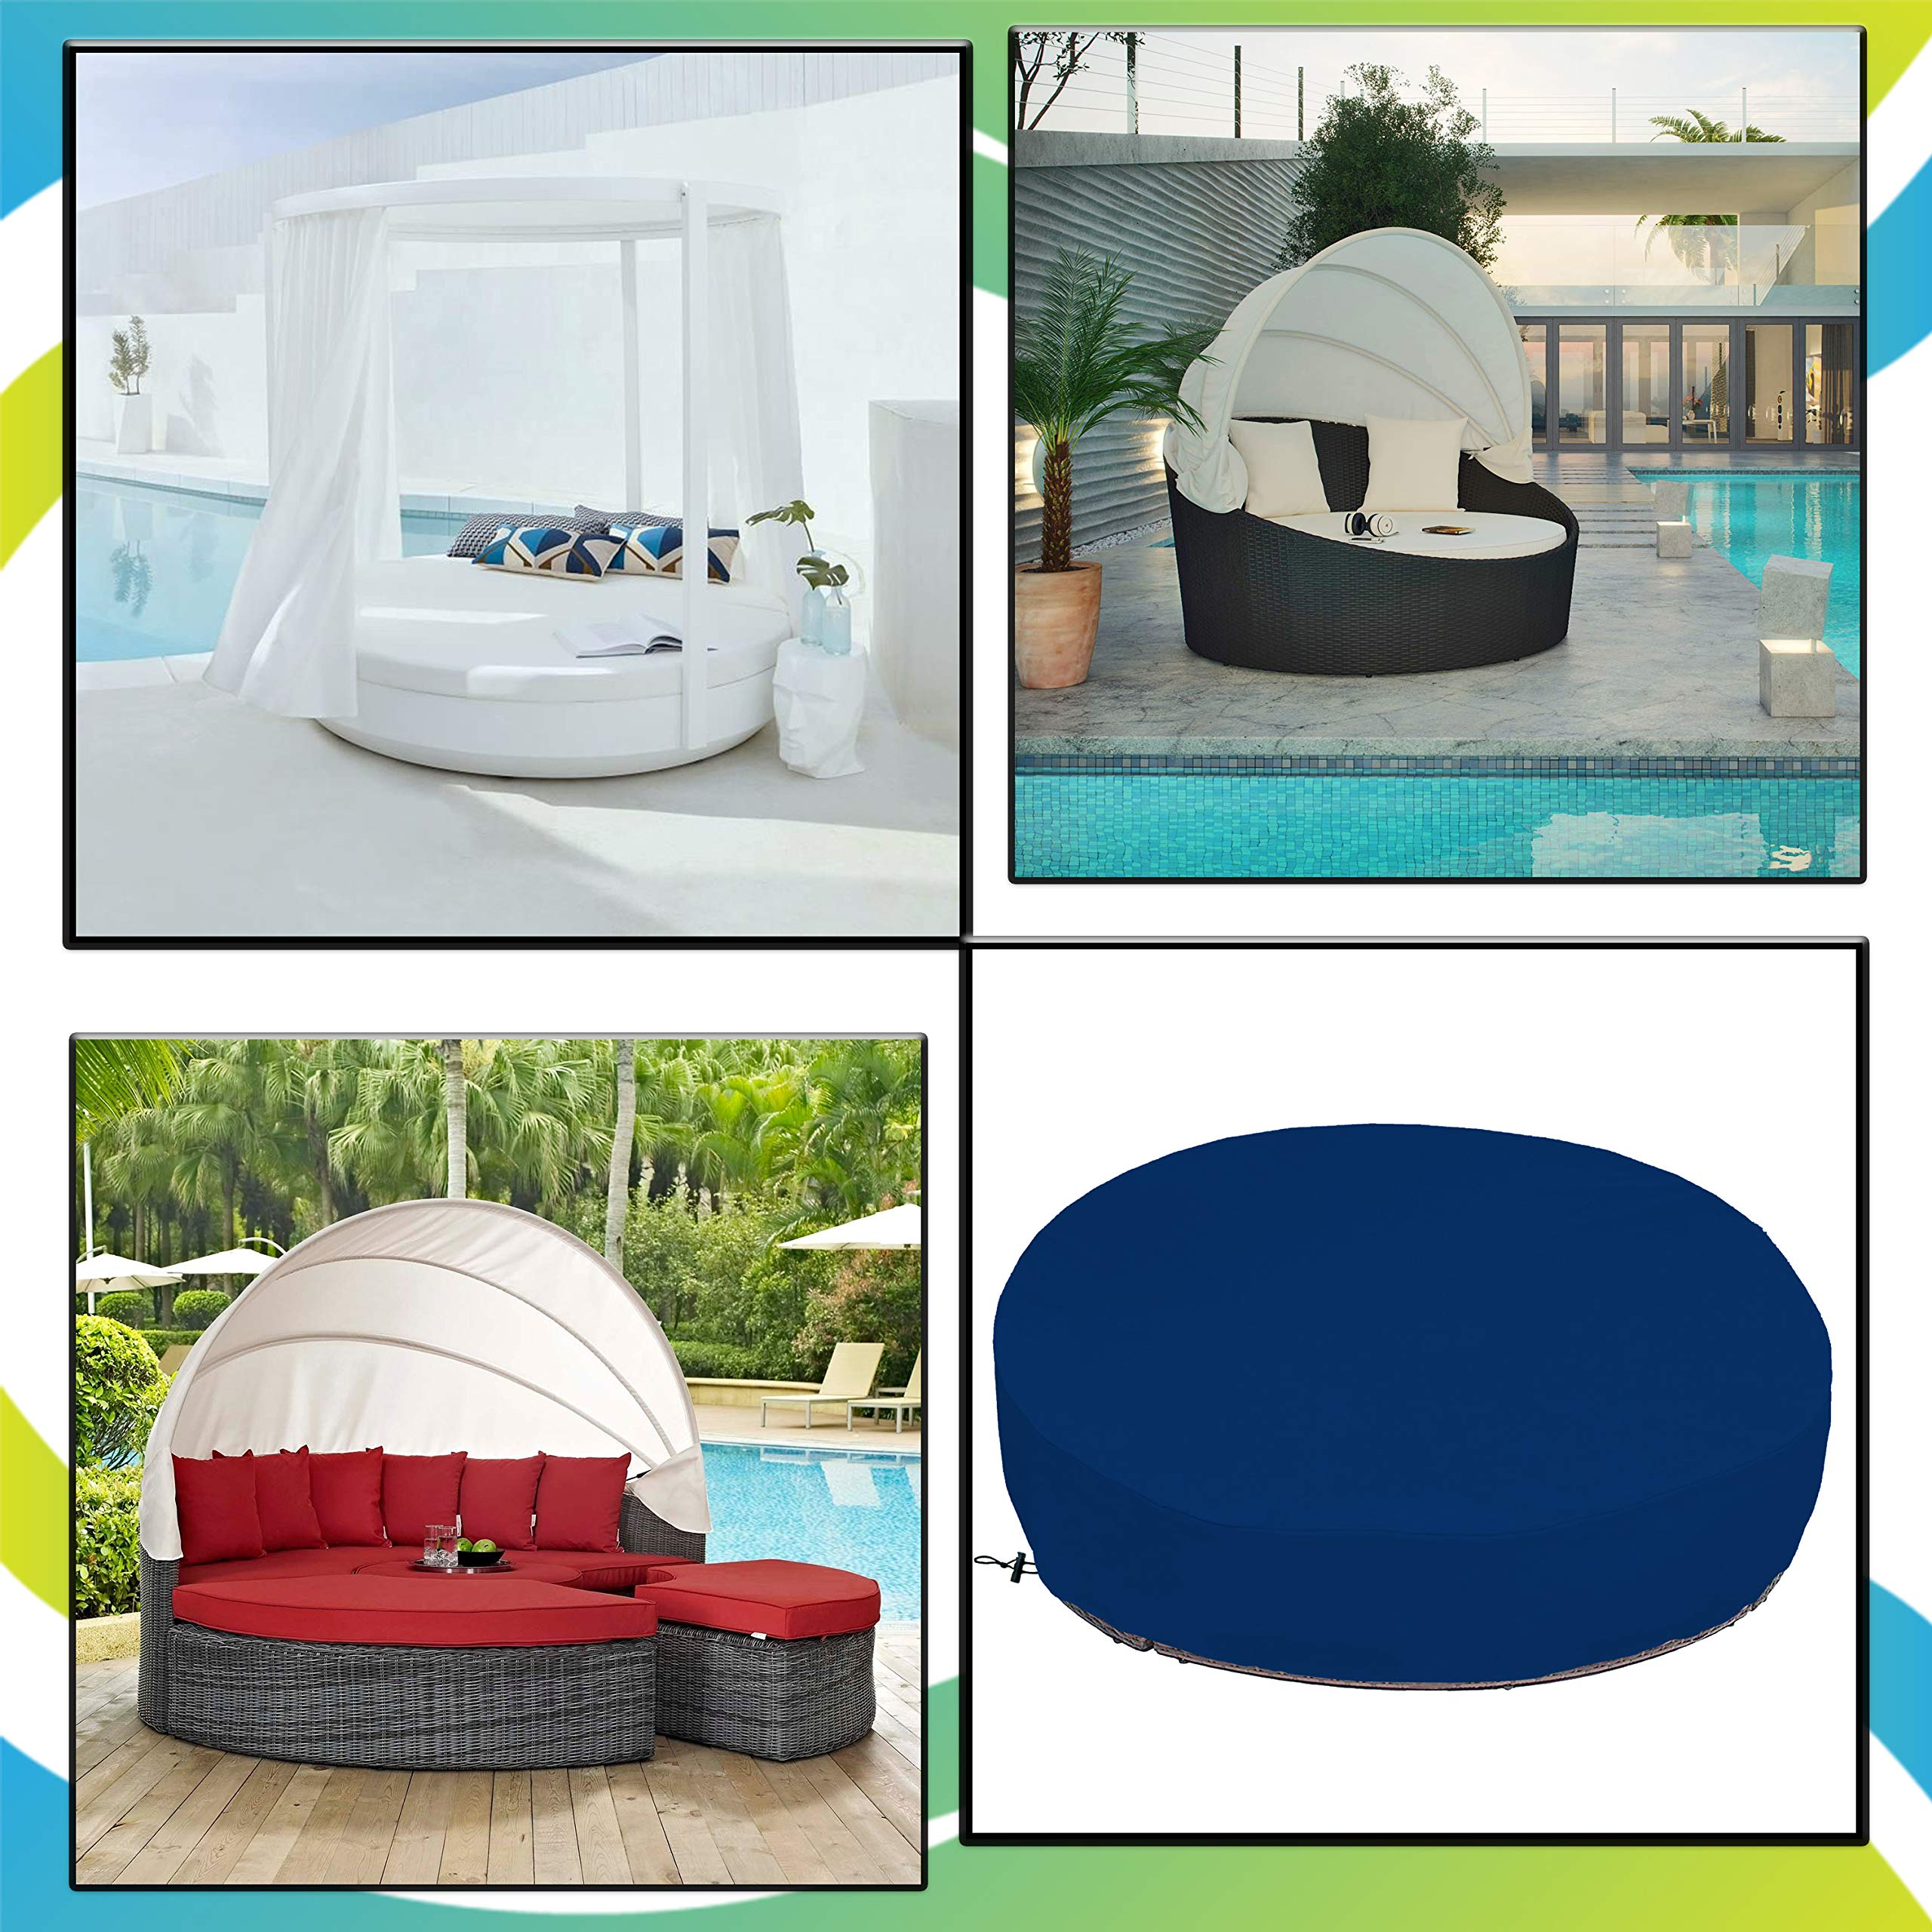 COVERS & ALL Outdoor Daybed Cover 18 Oz Waterproof - 100% UV & Weather Resistant Patio Furniture Cover with Air Pockets and Drawstring for Snug fit (Blue) by COVERS & ALL (Image #6)